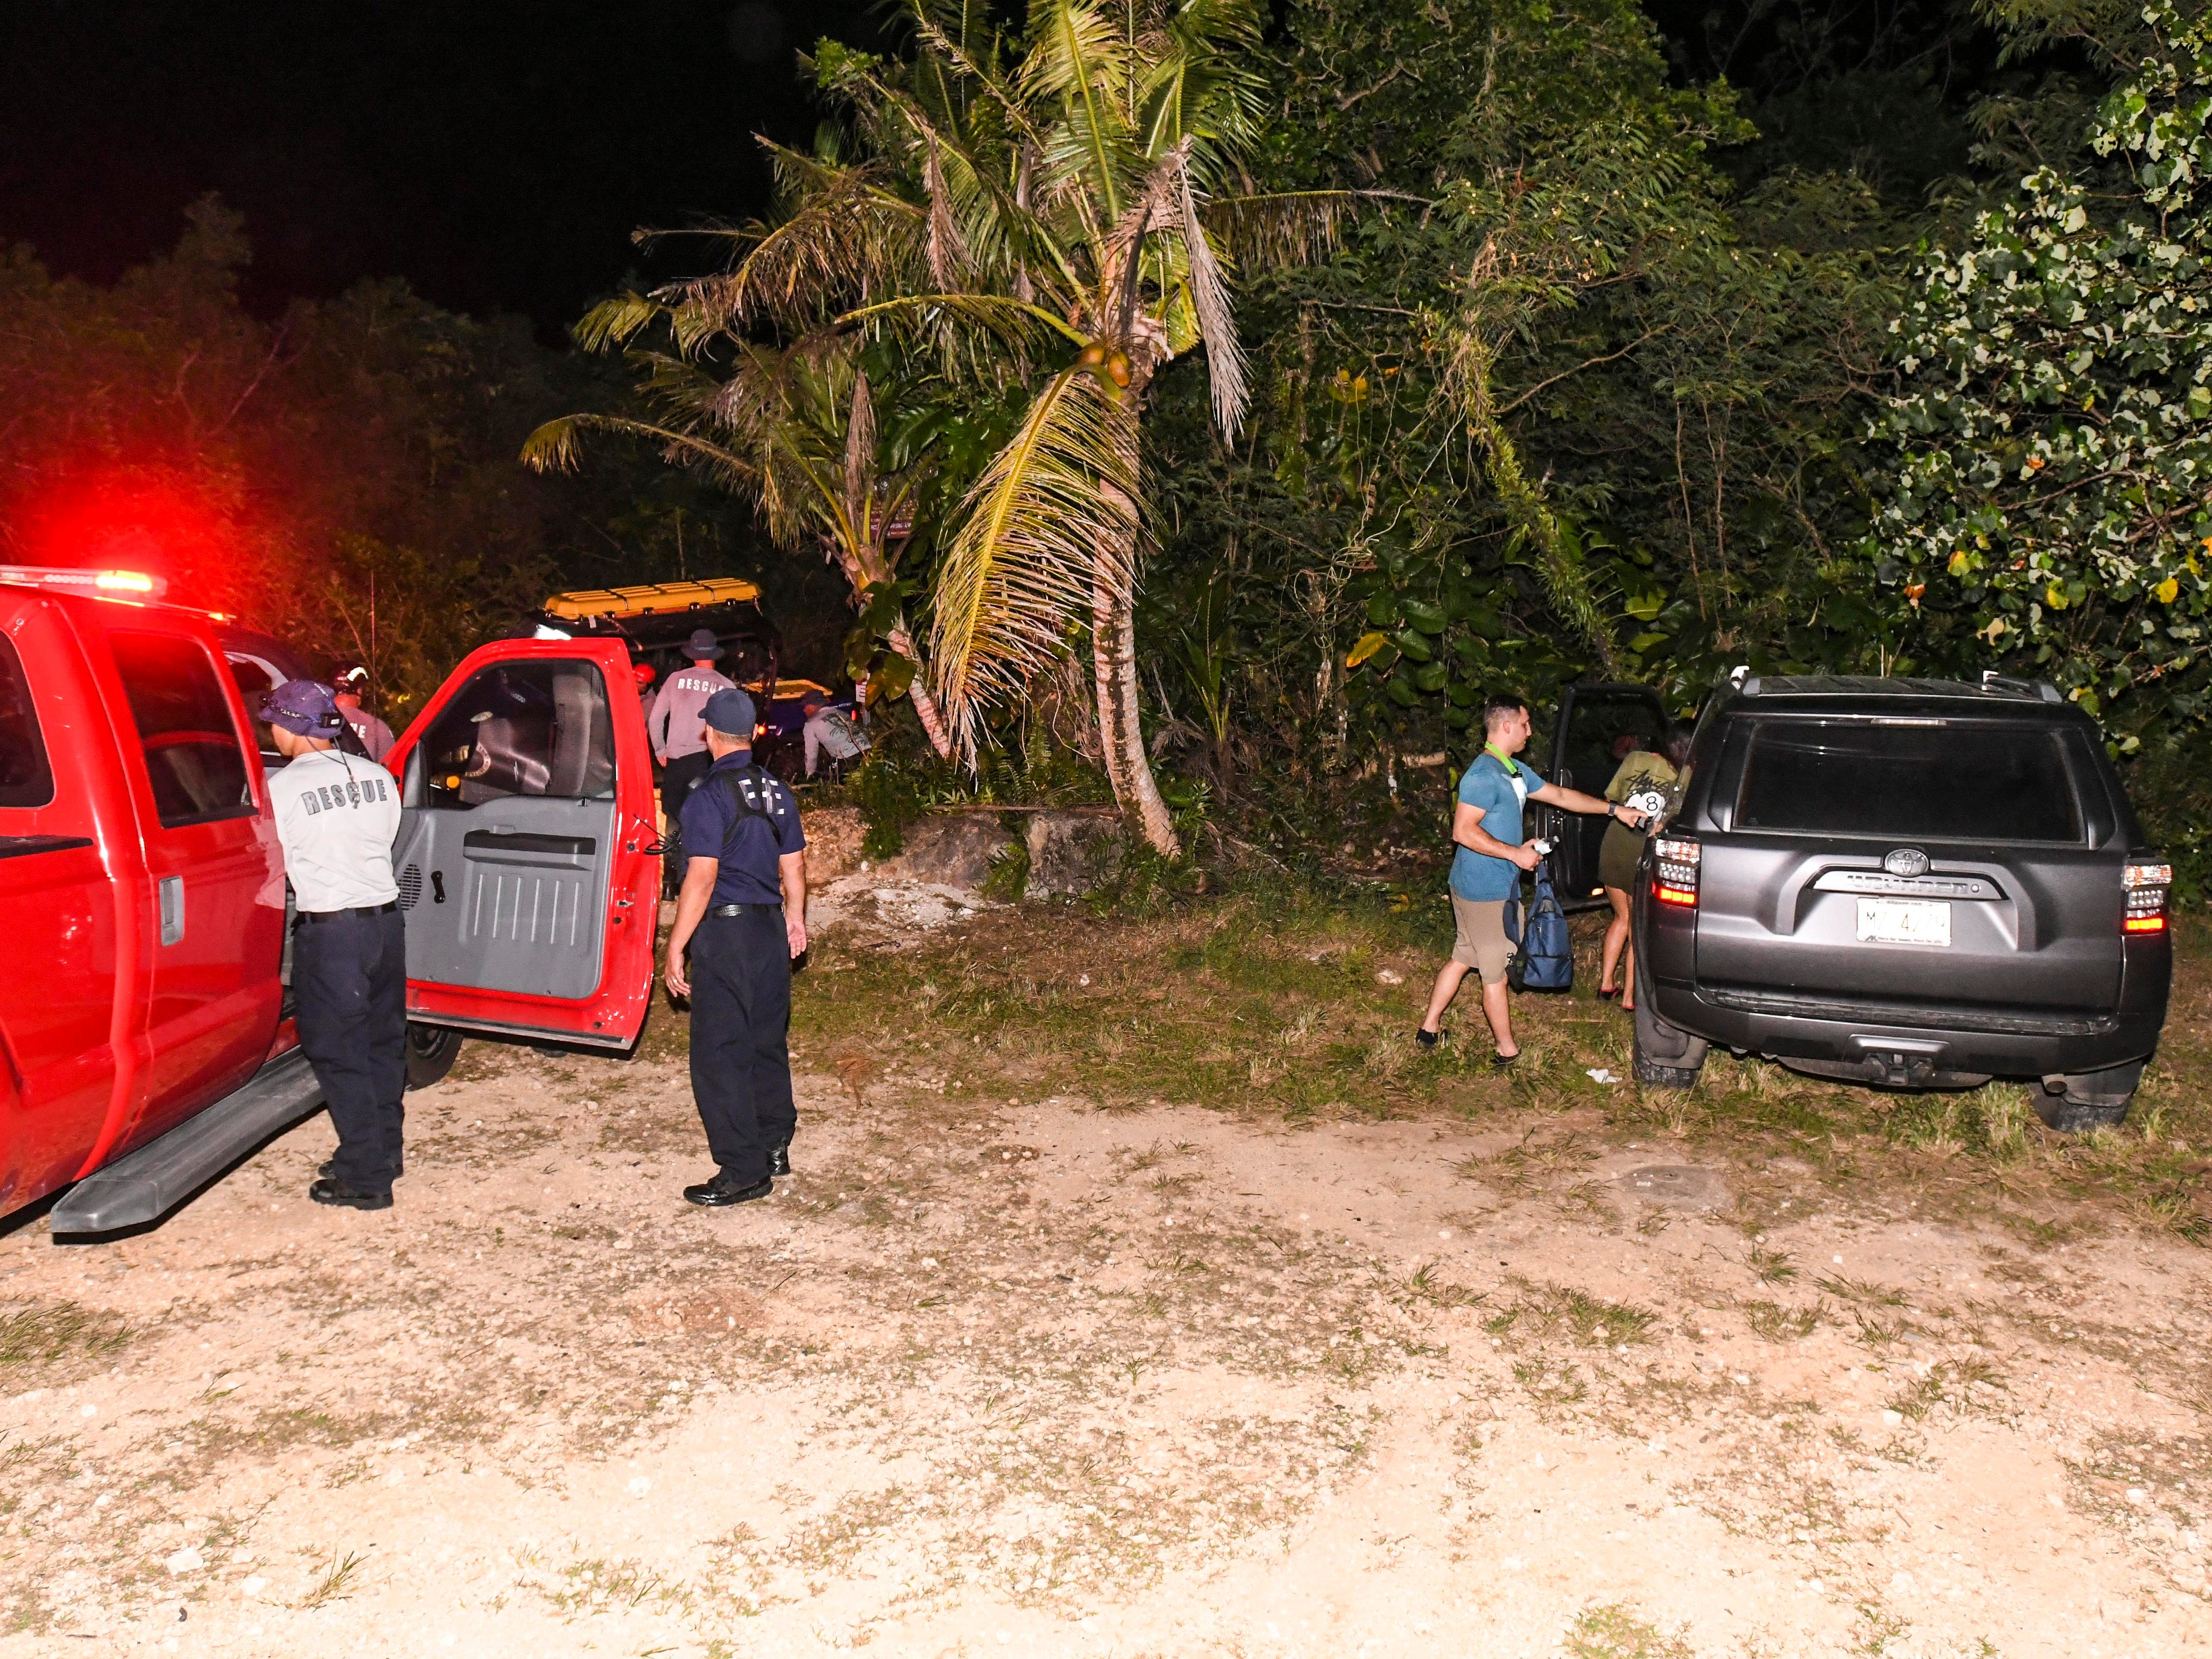 Guam Fire Department personnel rescued hikers who lost their bearings while exploring the area near the Pagat Caves in Mangilao on Sunday, Jan. 13, 2019. A man and woman alerted emergency personnel via mobile phone that they were unable to find their way back out as darkness fell over the area. GFD rescue personnel responded and was able to locate the individuals in the jungle. An GFD all-terrain vehicle was used to return the hikers back to the trail head just before 8:00 p.m. the same evening.